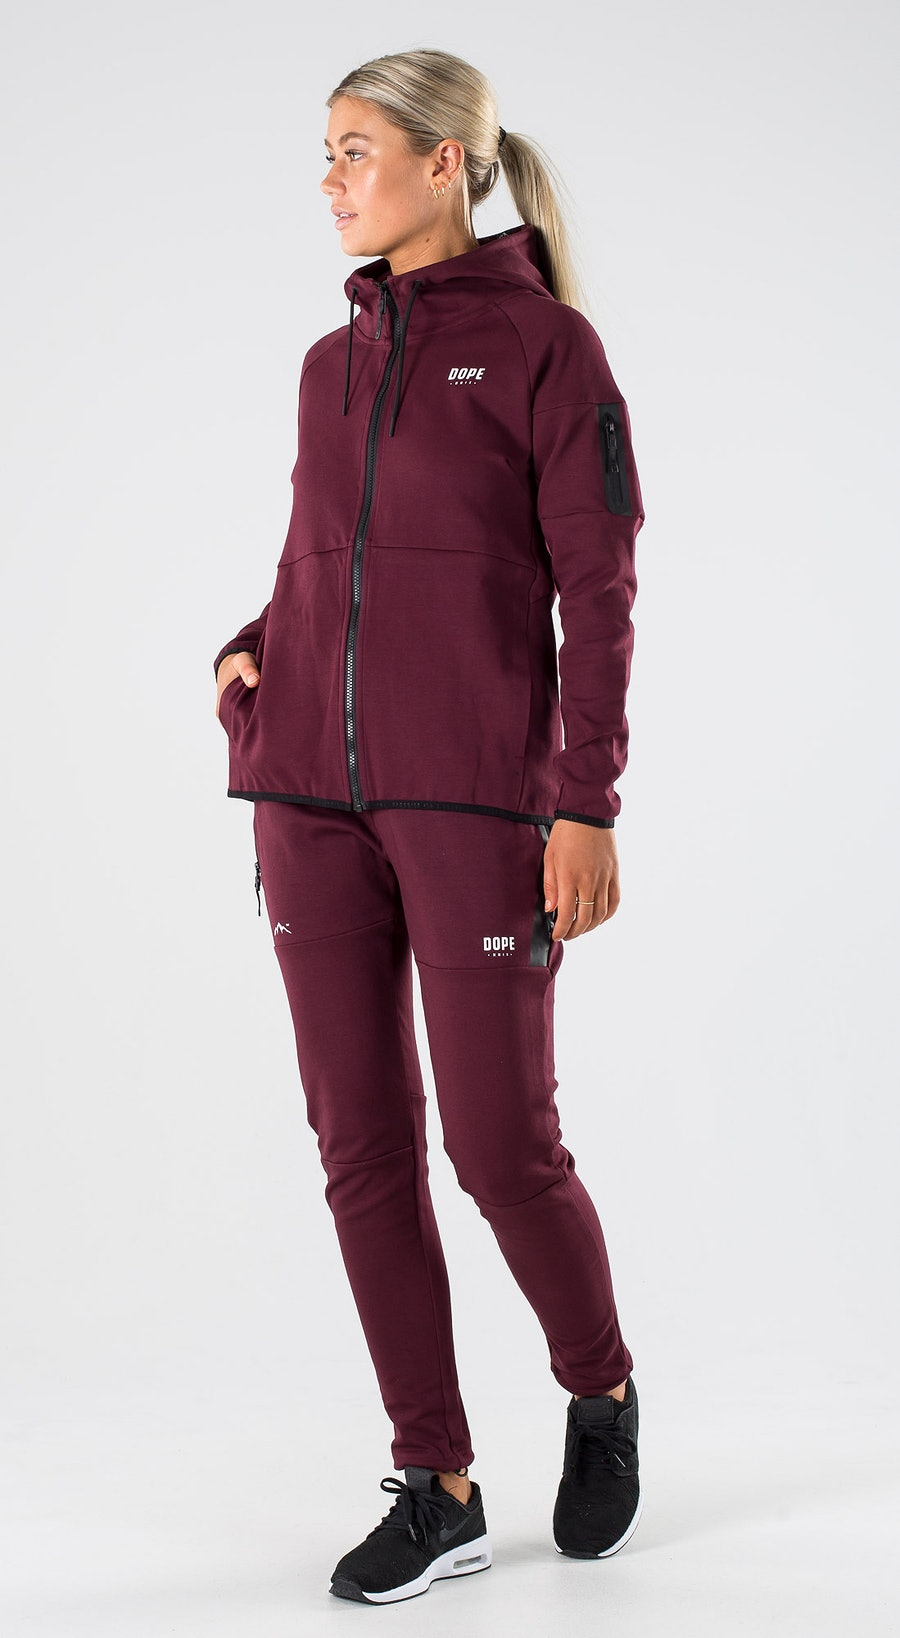 Dope Ronin Zip W Burgundy Outfit Multi